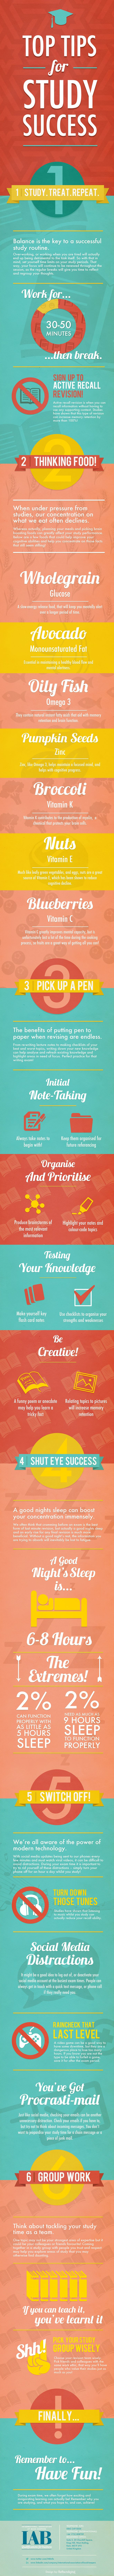 Top Tips for Study Success!!